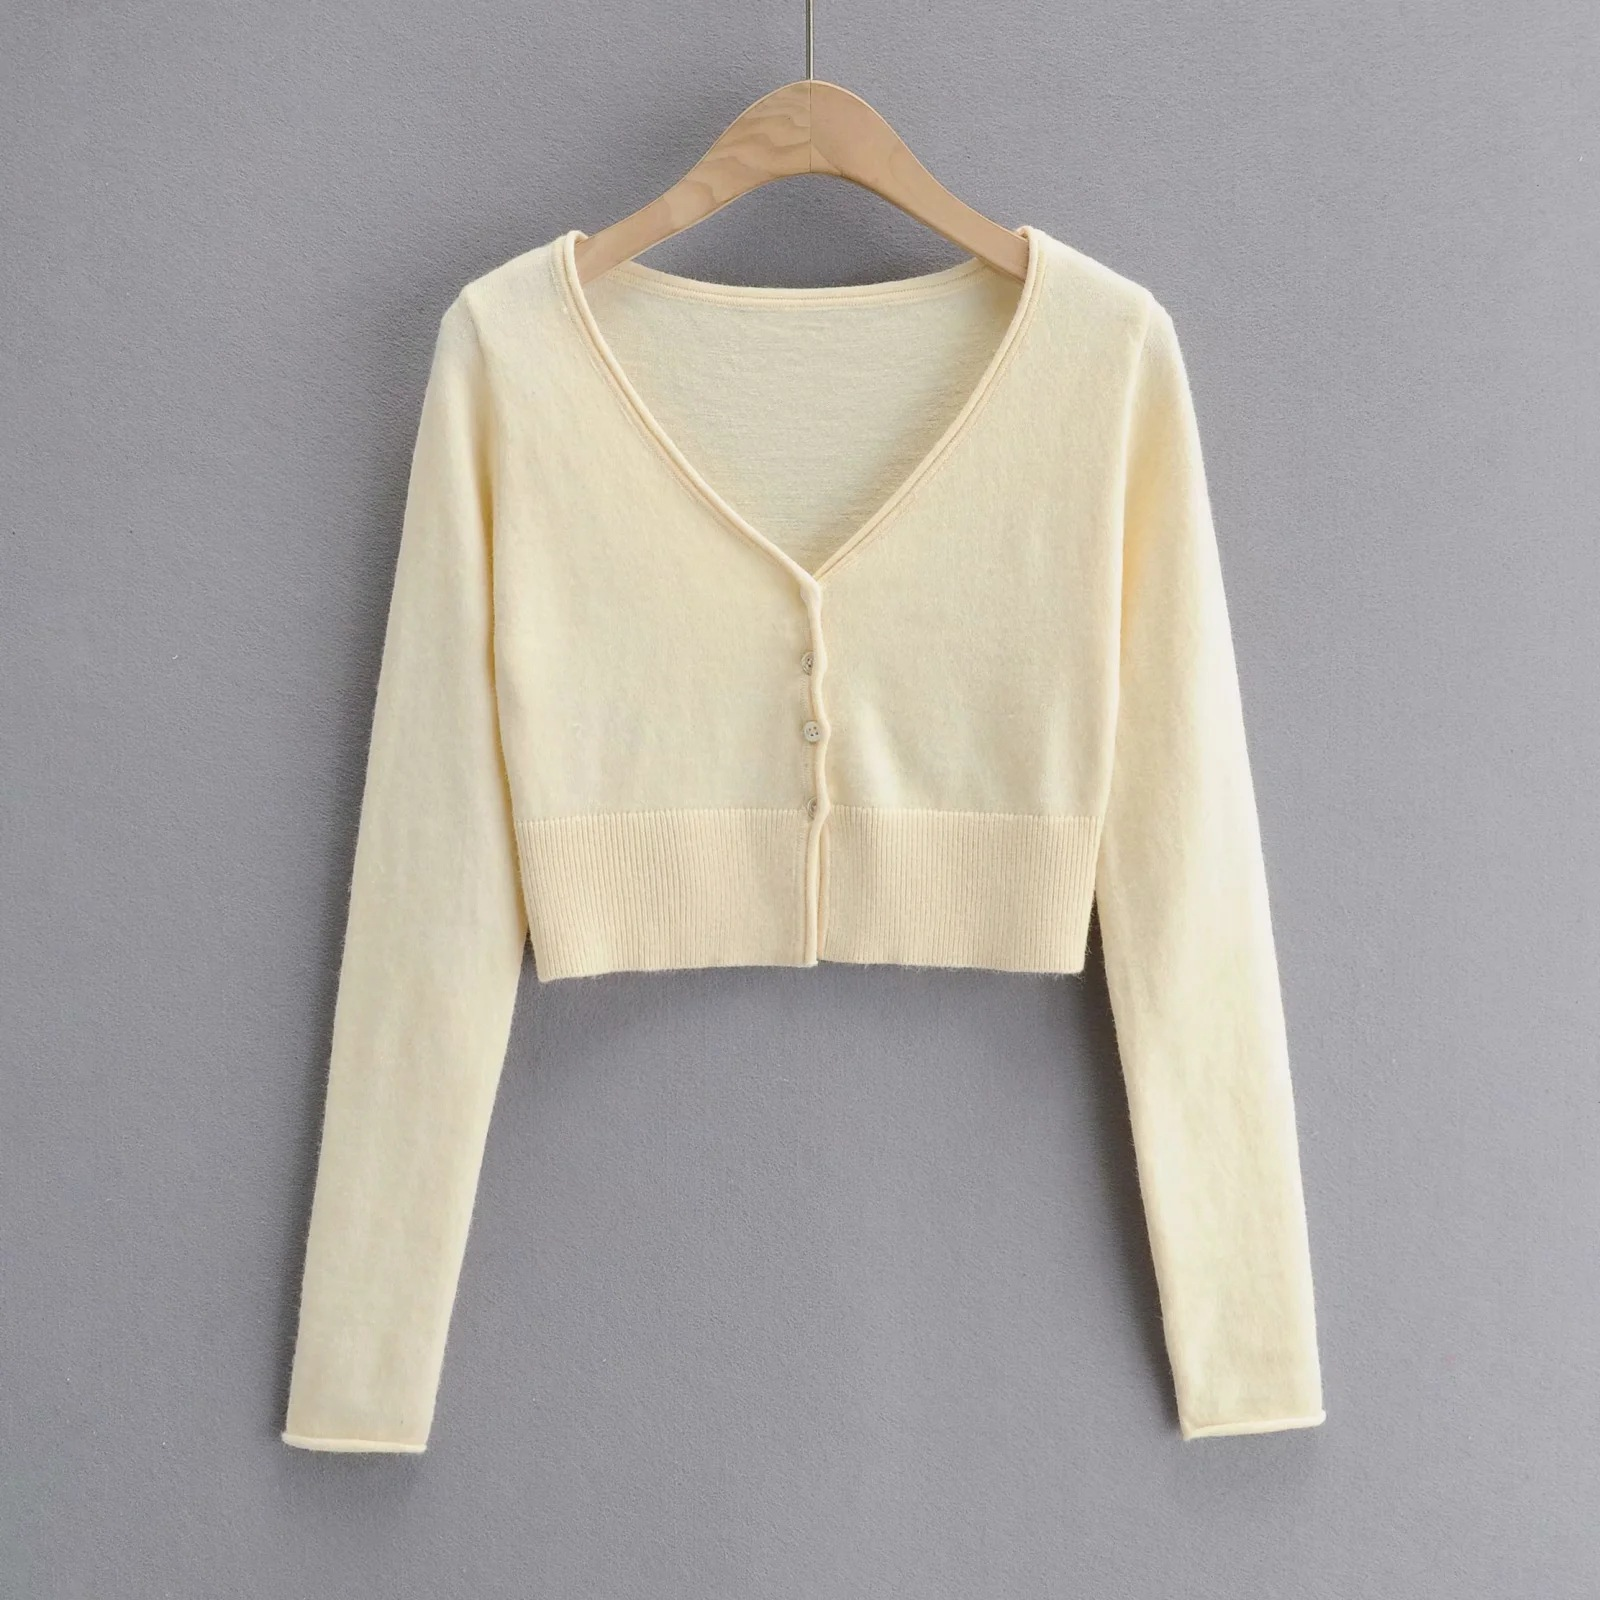 Solid color knitted cardigan  NSAC24906